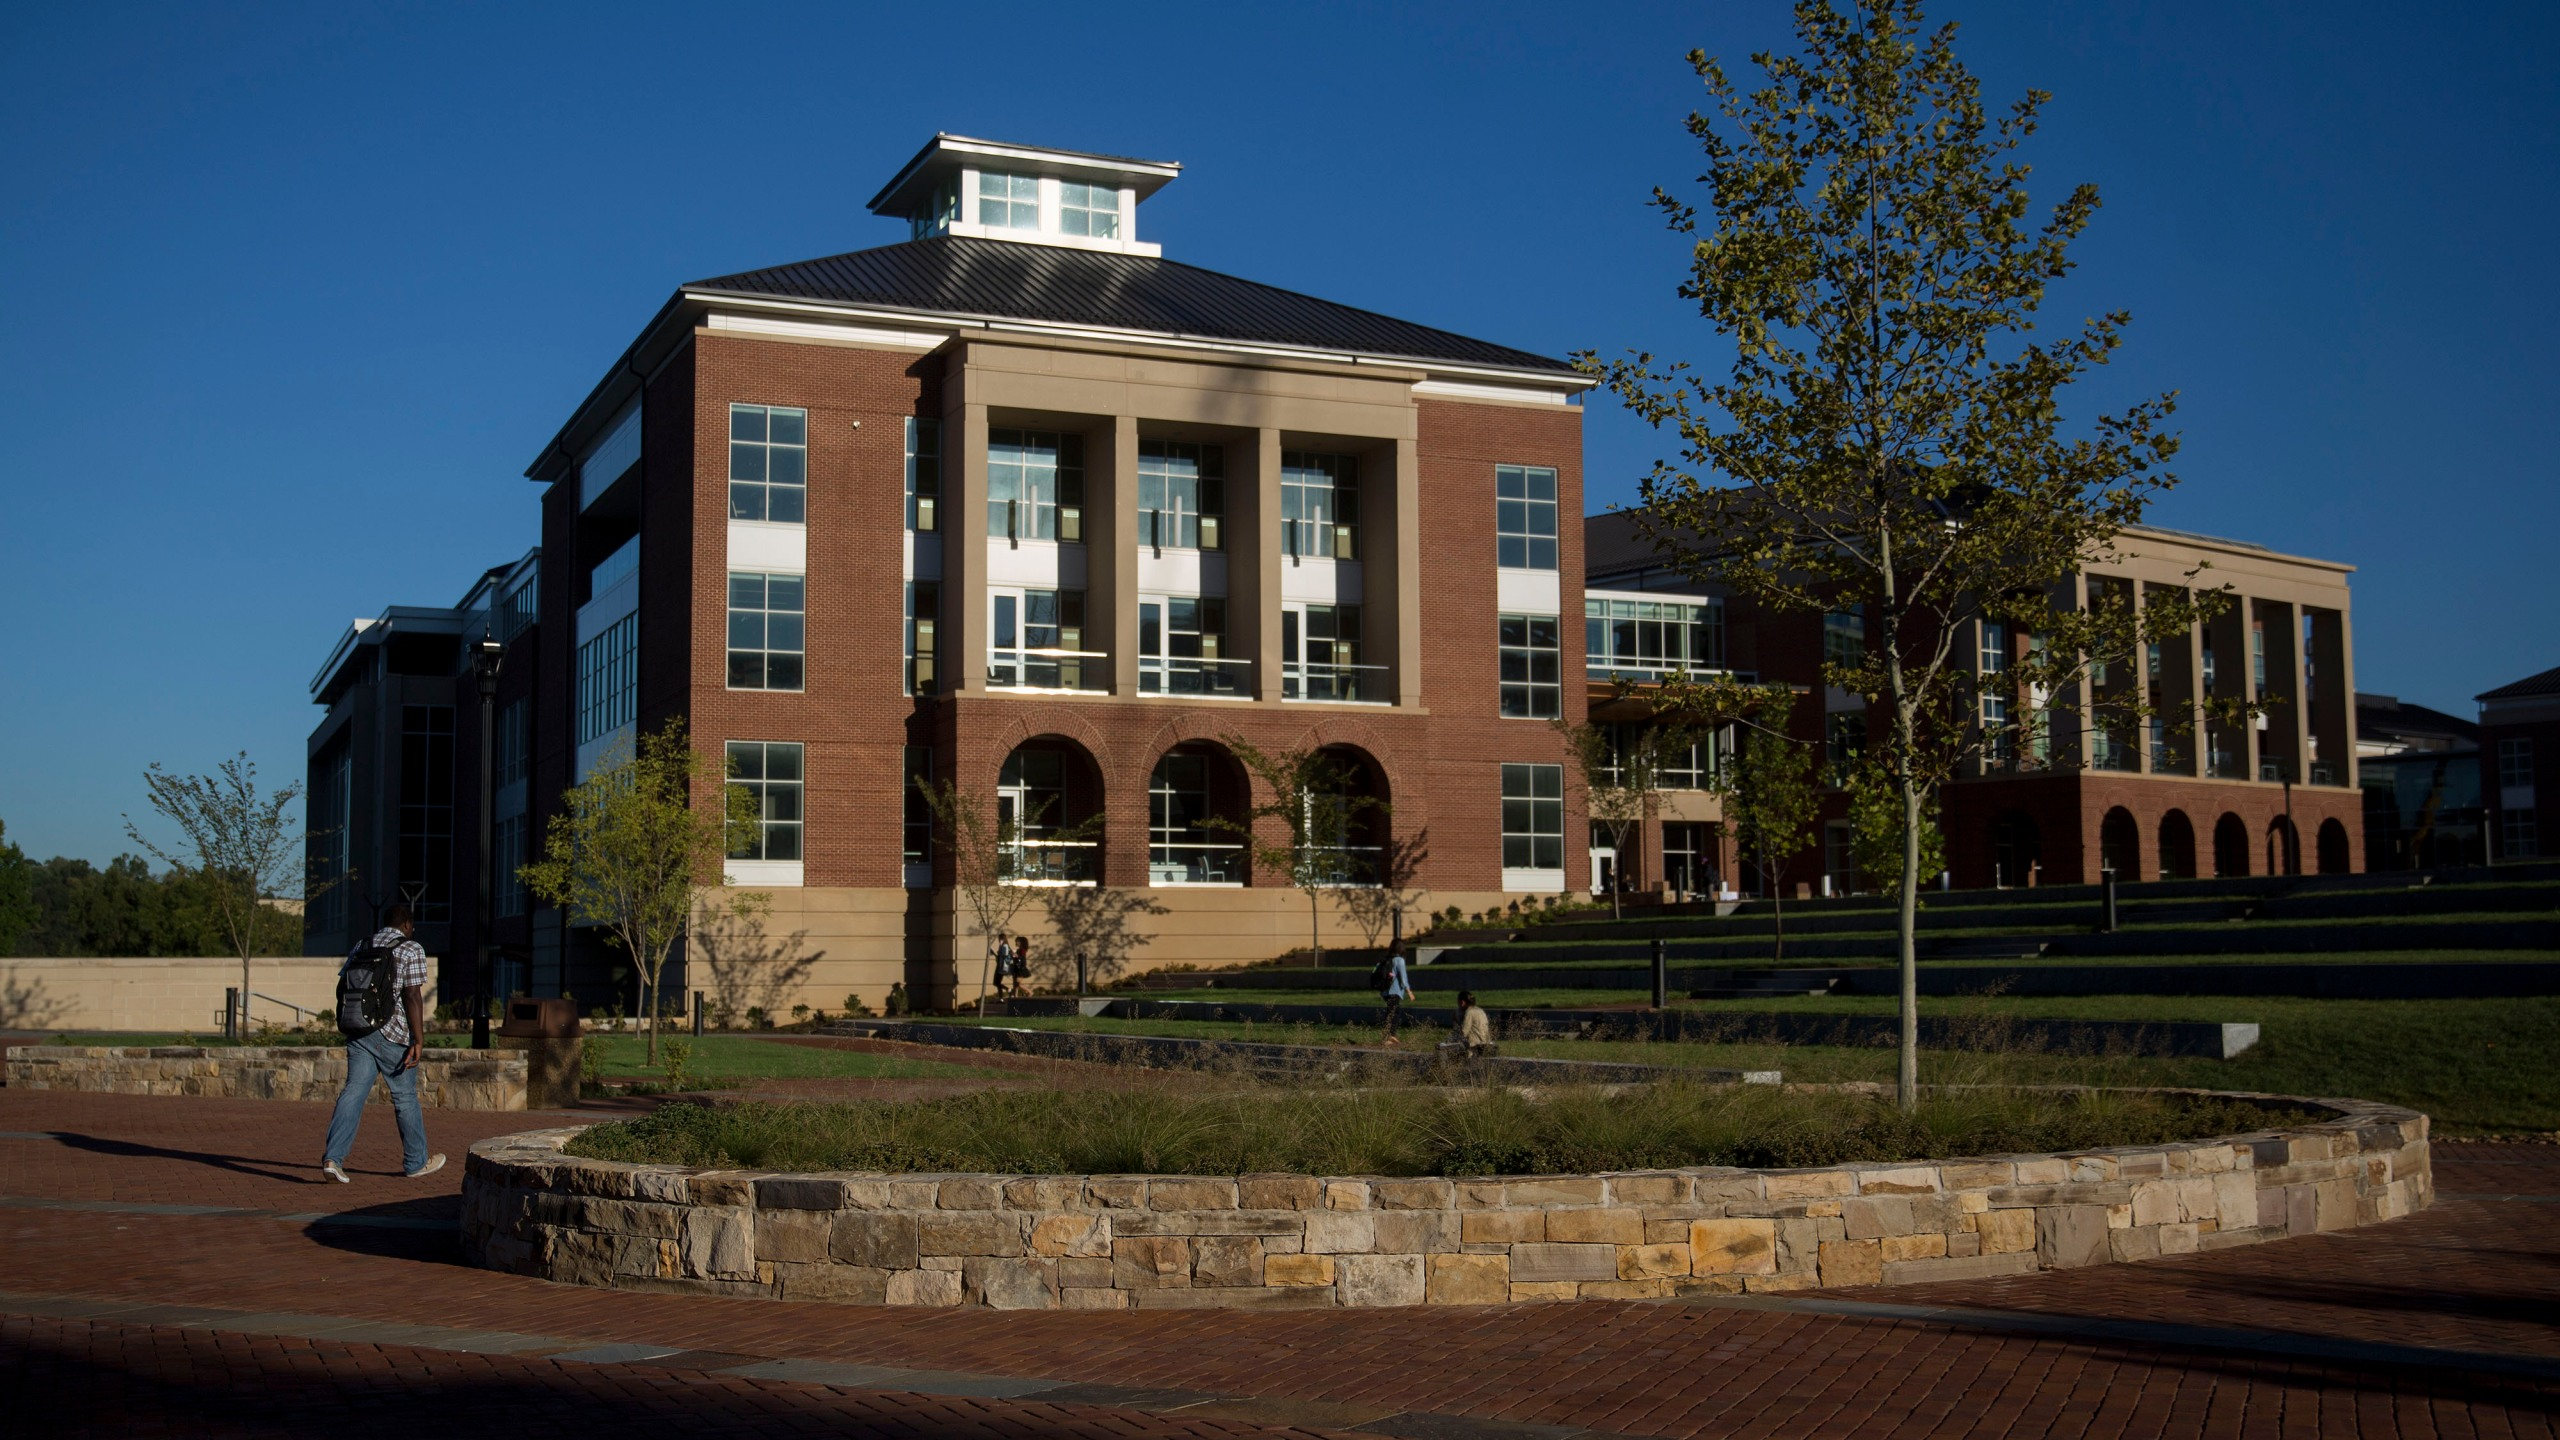 Jerry Falwell Library stands on the campus of Liberty University in Lynchburg, Virginia, U.S., on Monday, Sept. 14, 2015. Liberty University was founded by televangelist and reverend Jerry Falwell in 1971 as Lynchburg Baptist College. Photographer: Andrew Harrer/Bloomberg via Getty Images